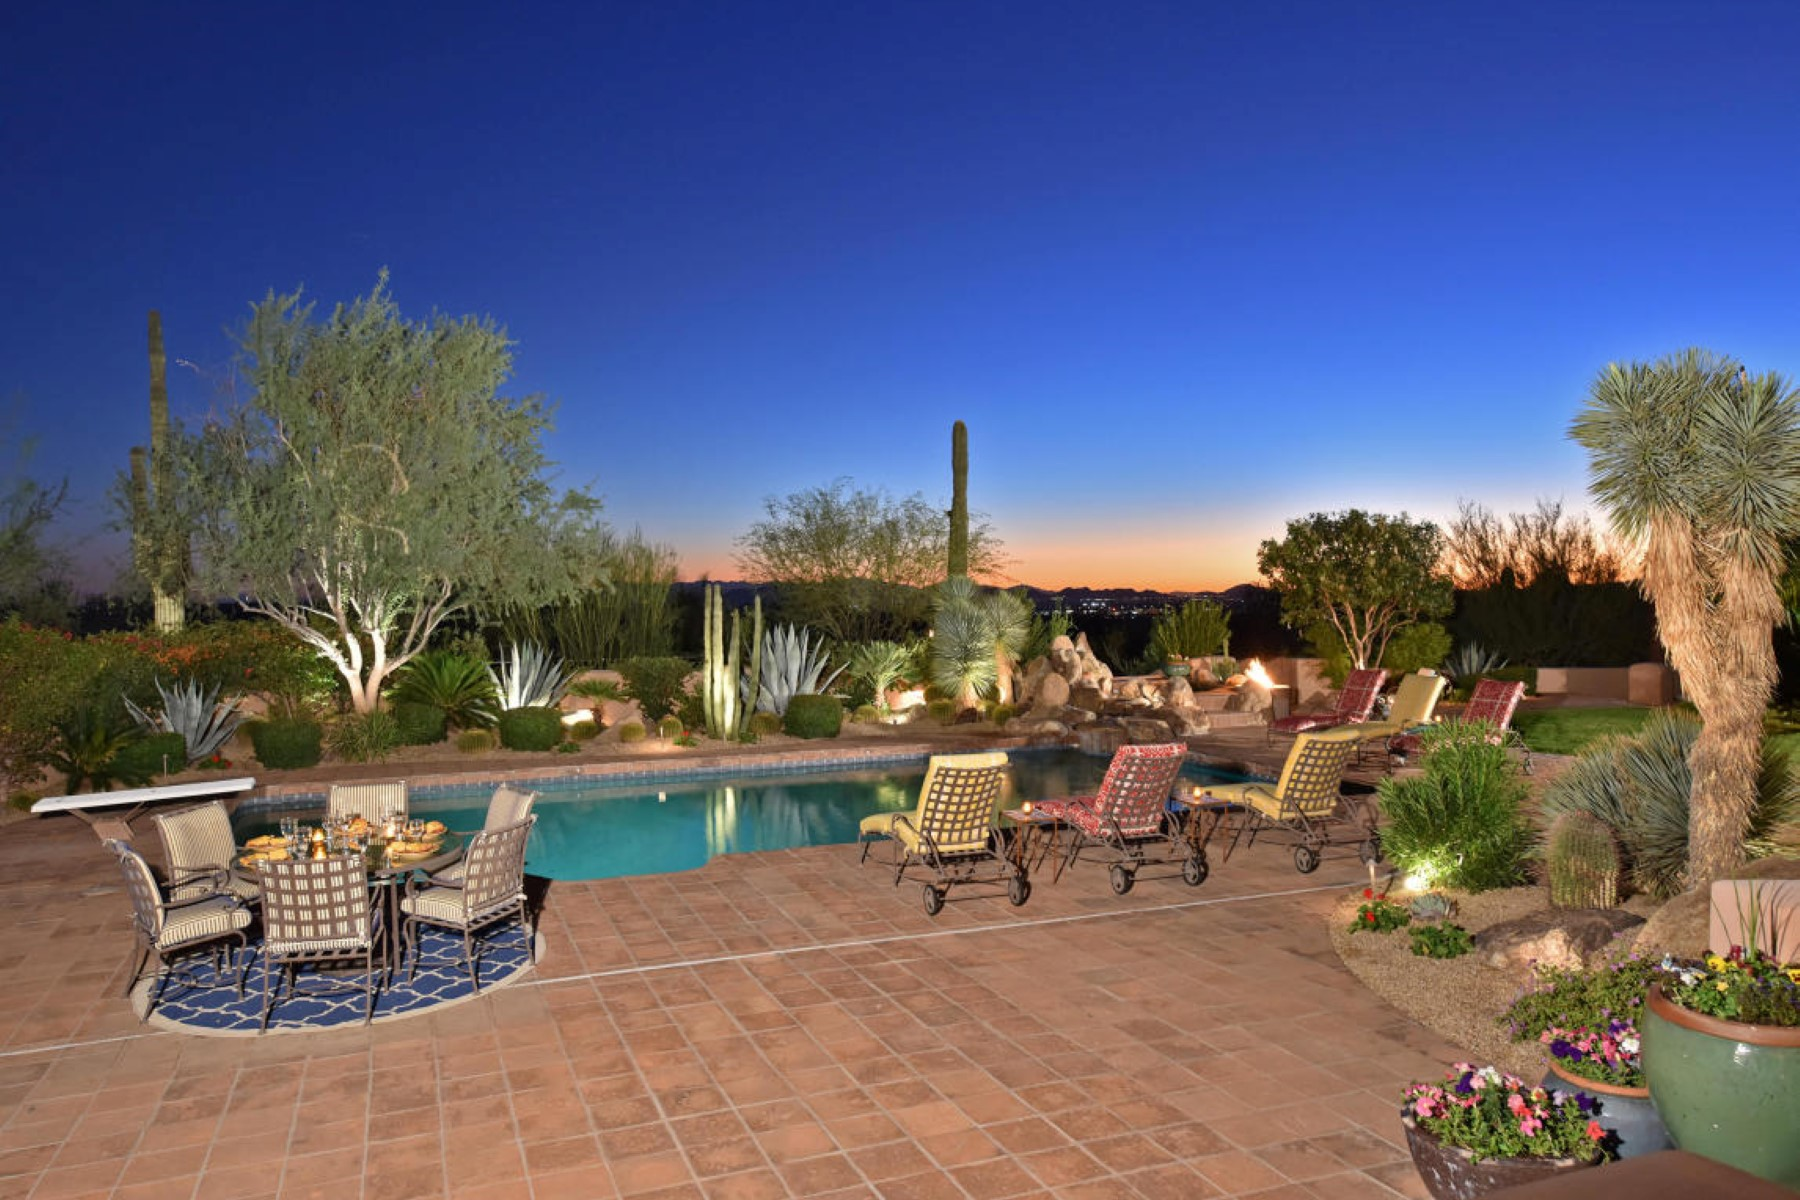 Single Family Home for Sale at authentically renovated Santa Fe estate perched on over 3.5 acres 22602 N Dobson Rd Scottsdale, Arizona 85255 United States